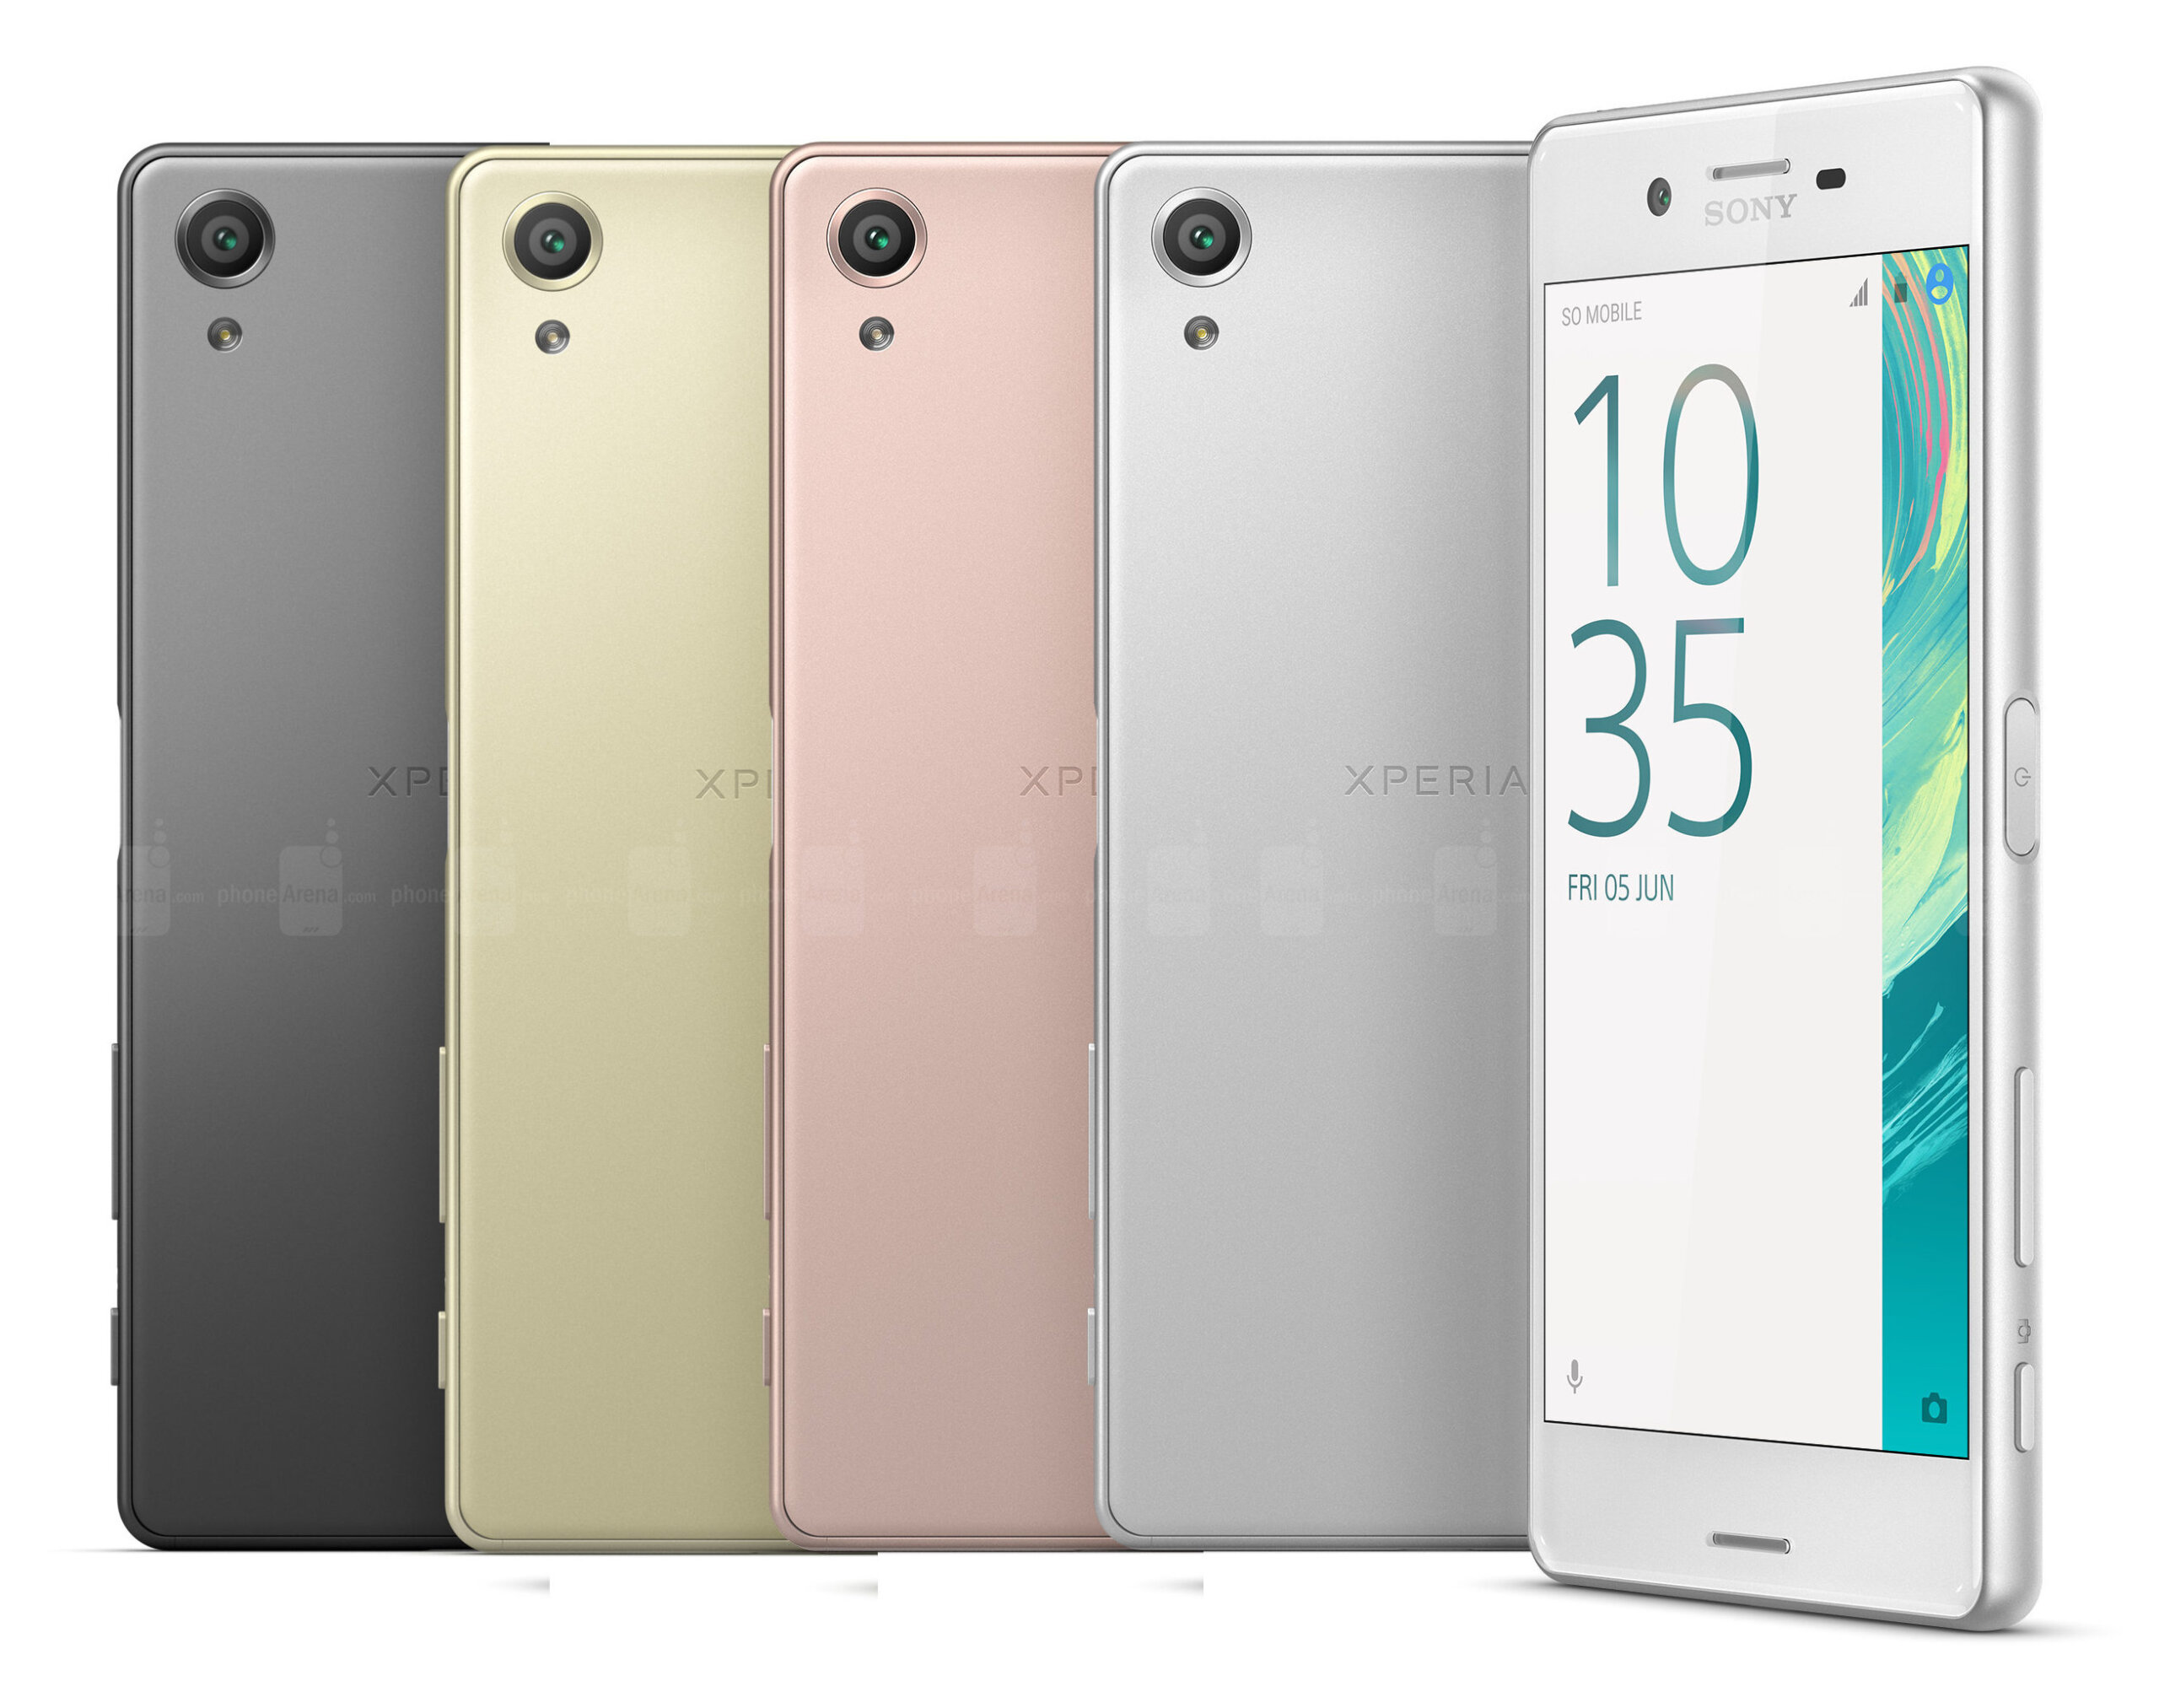 Sony Xperia X 1additional e1465925709295 scaled